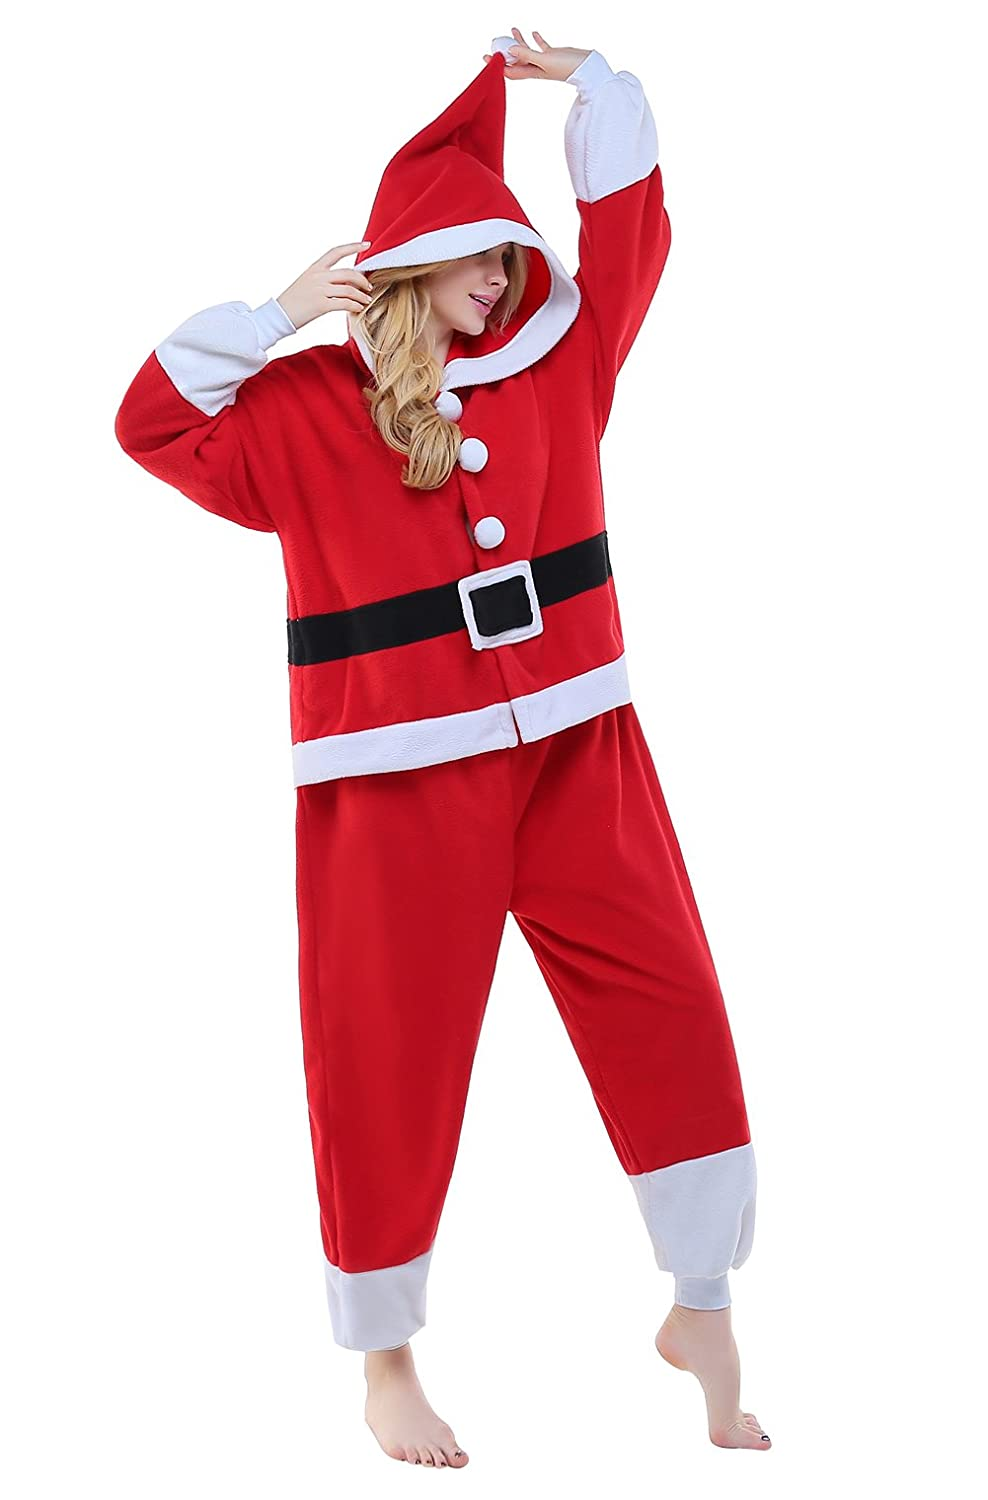 CANASOUR Christmas Santa Claus Cosplay Anime Unisex Adult Pajamas one-Piece Onesie